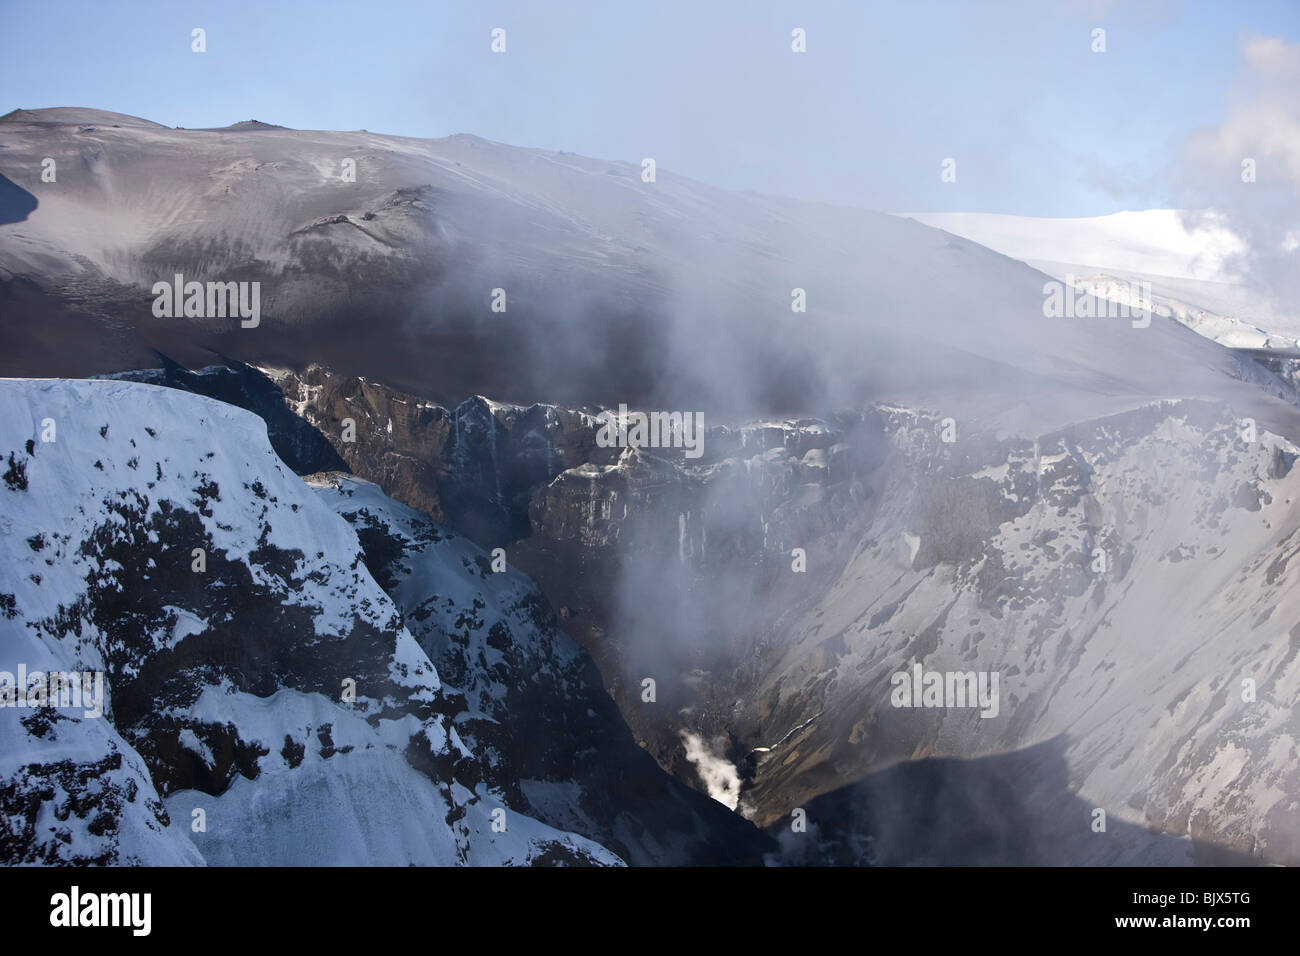 Steam and poisoned gas from the volcanic eruption at Fimmvorduhals, in Eyjafjallajokull, - Stock Image